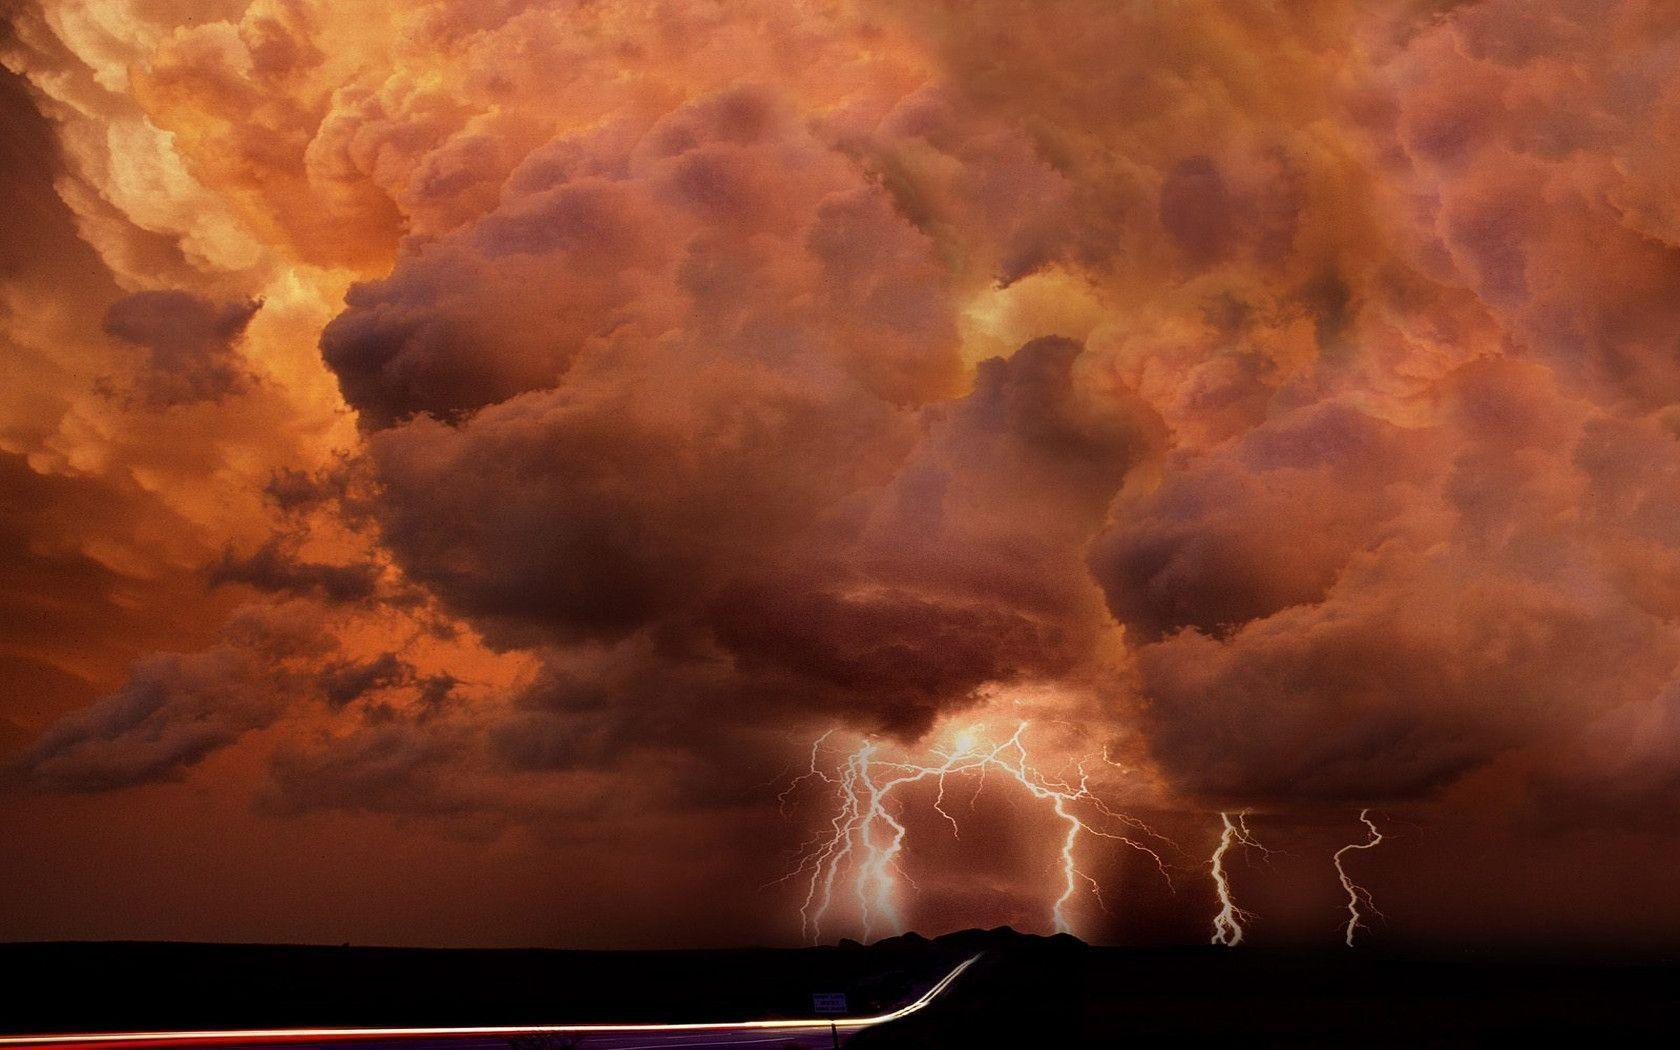 Download Storm Lightning Wallpaper 1680x1050 | Wallpoper #404077